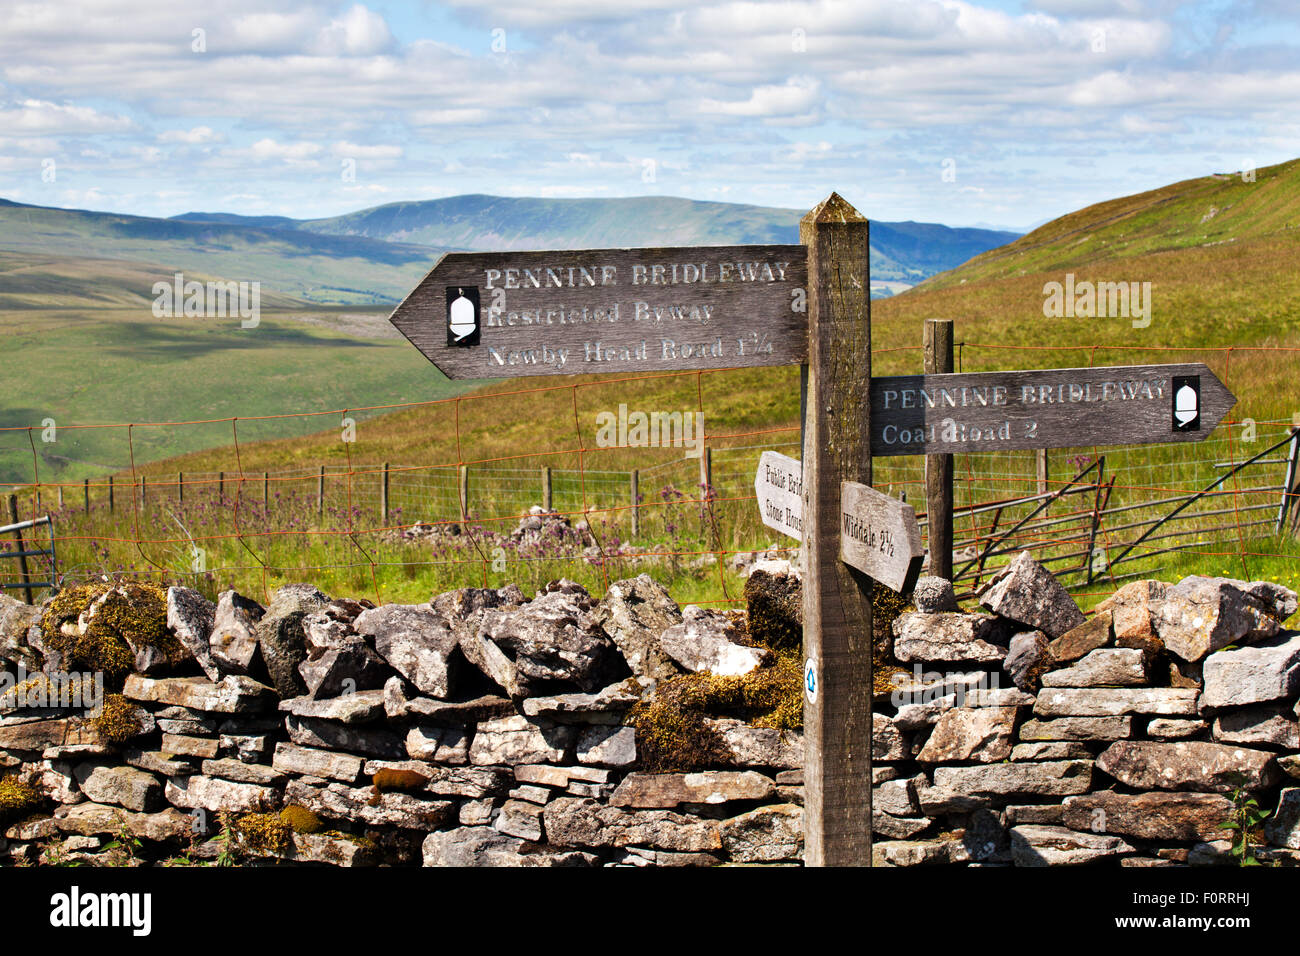 Signpost on the Pennine Bridleway at Arten Gill in Dentdale Yorkshire Dales Cumbria England - Stock Image